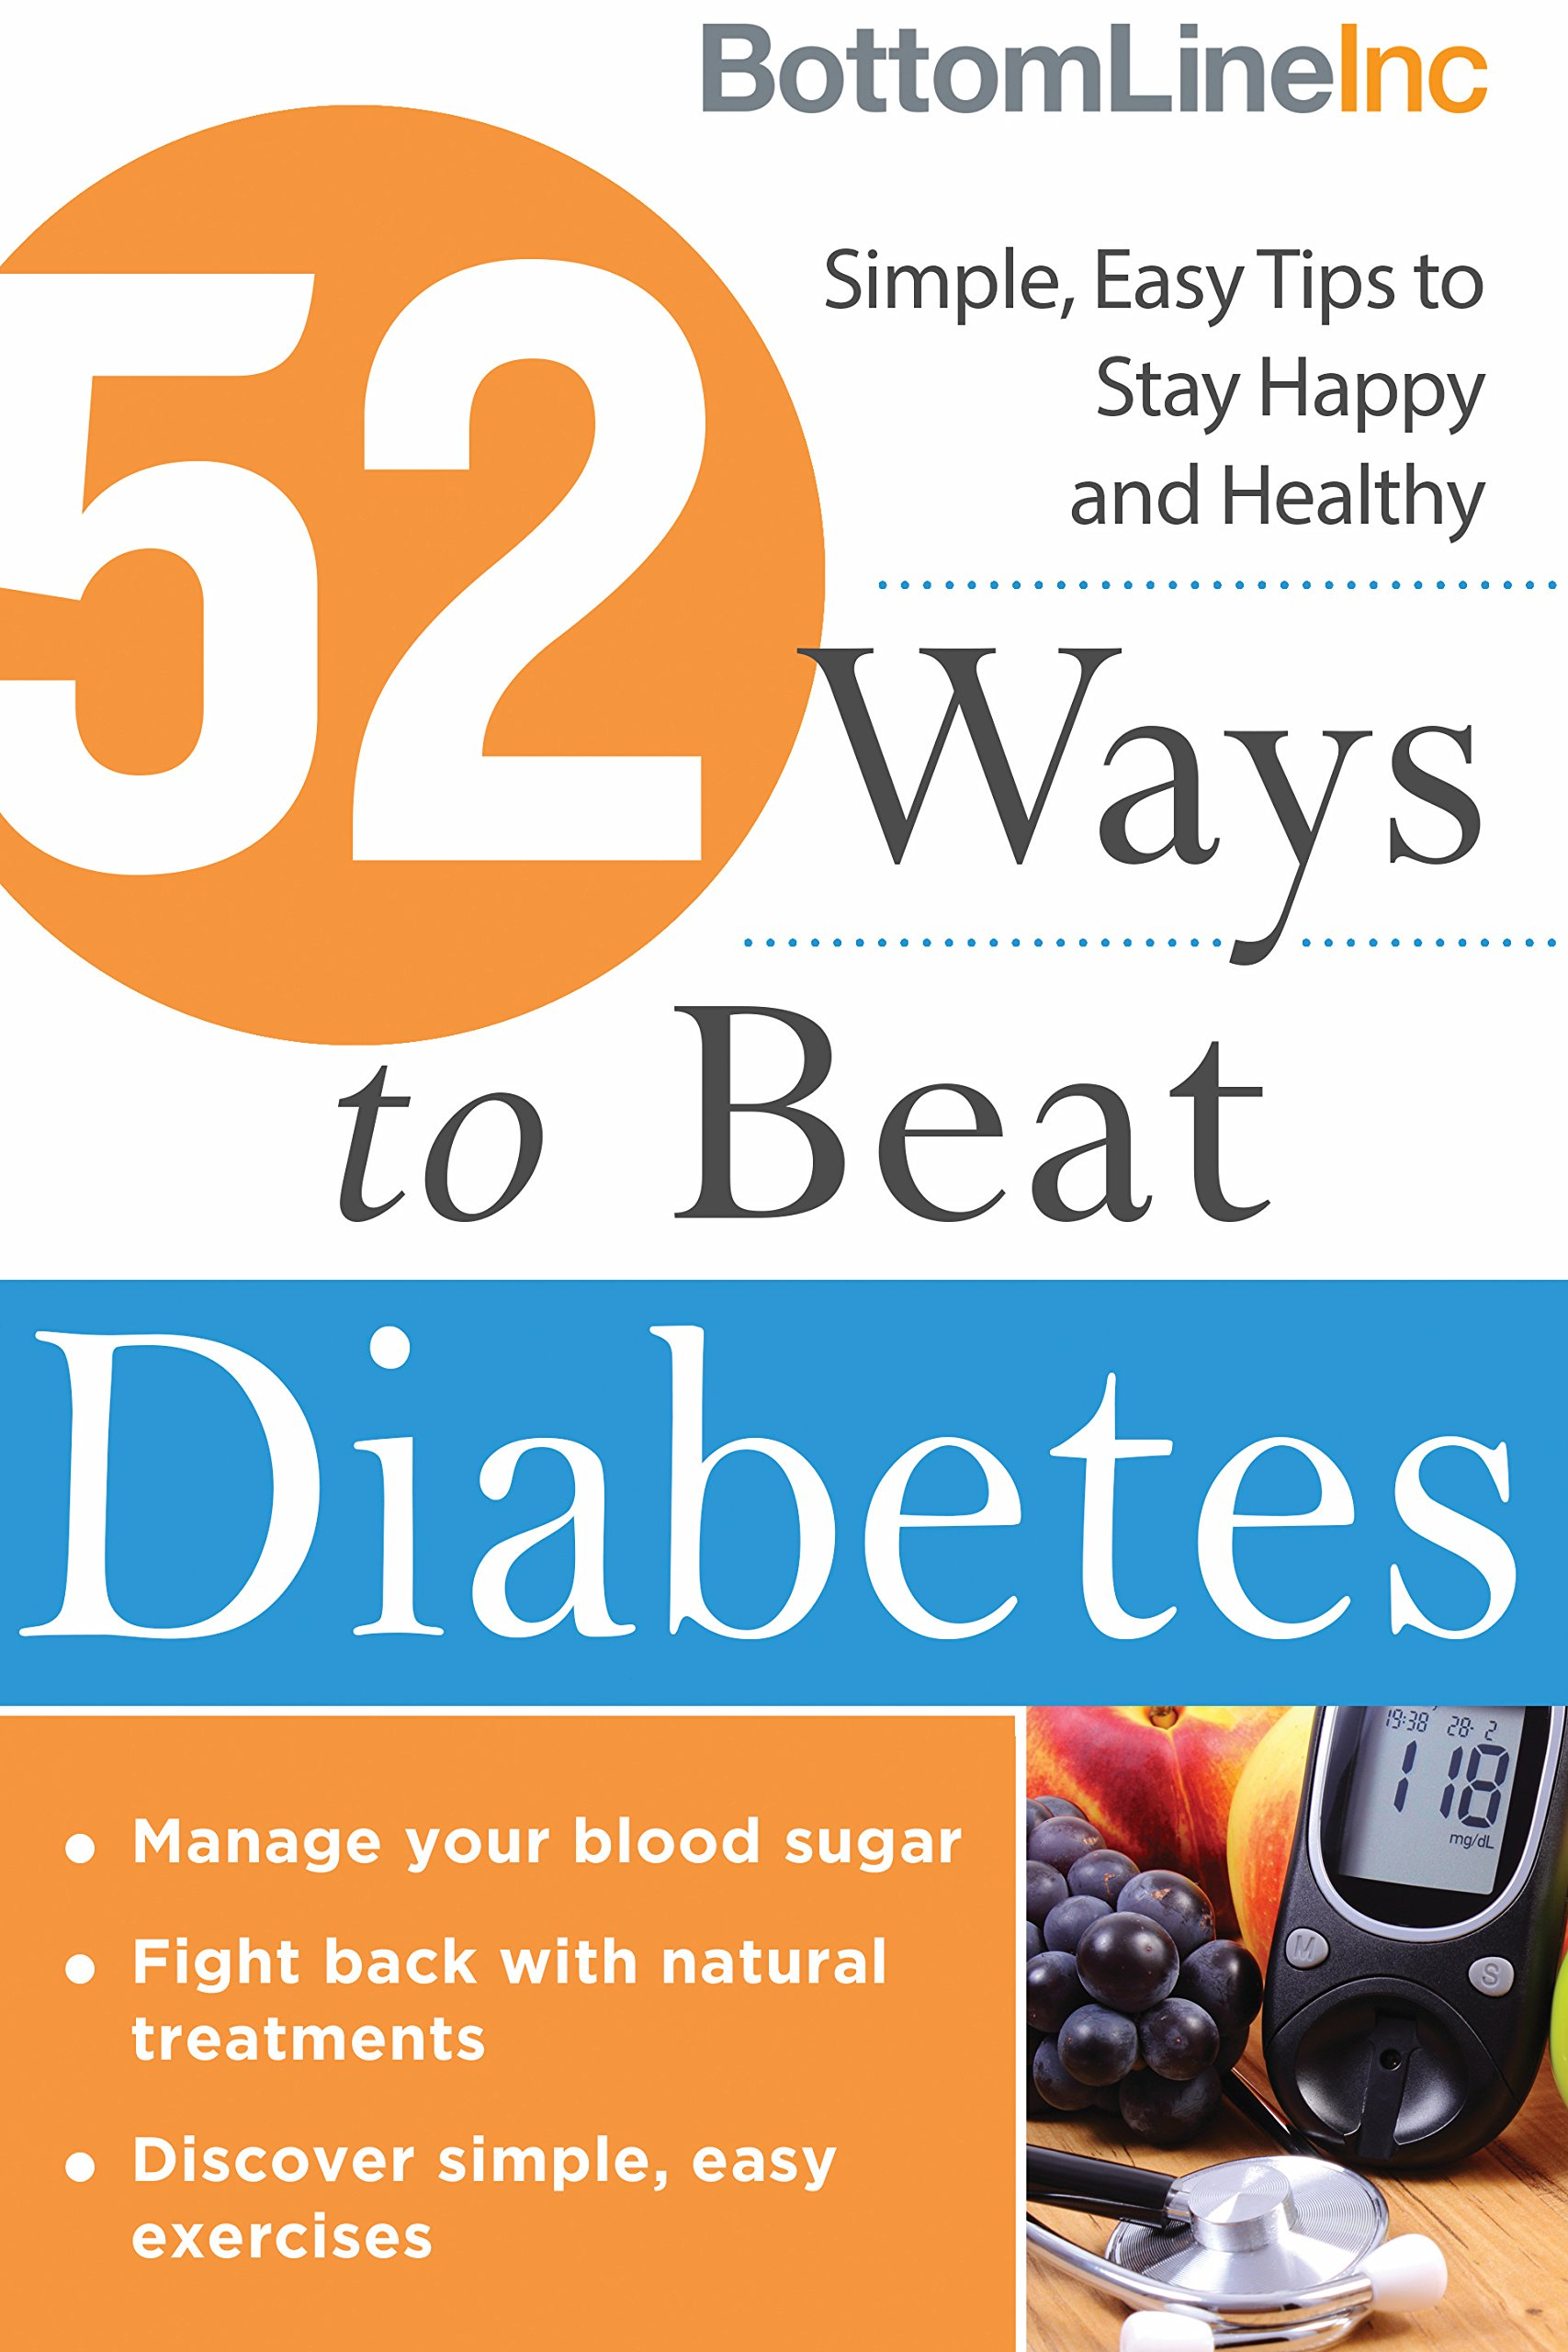 52 Ways to Beat Diabetes: Simple, Easy Tips to Stay Happy and Healthy (Bottom Line) pdf epub